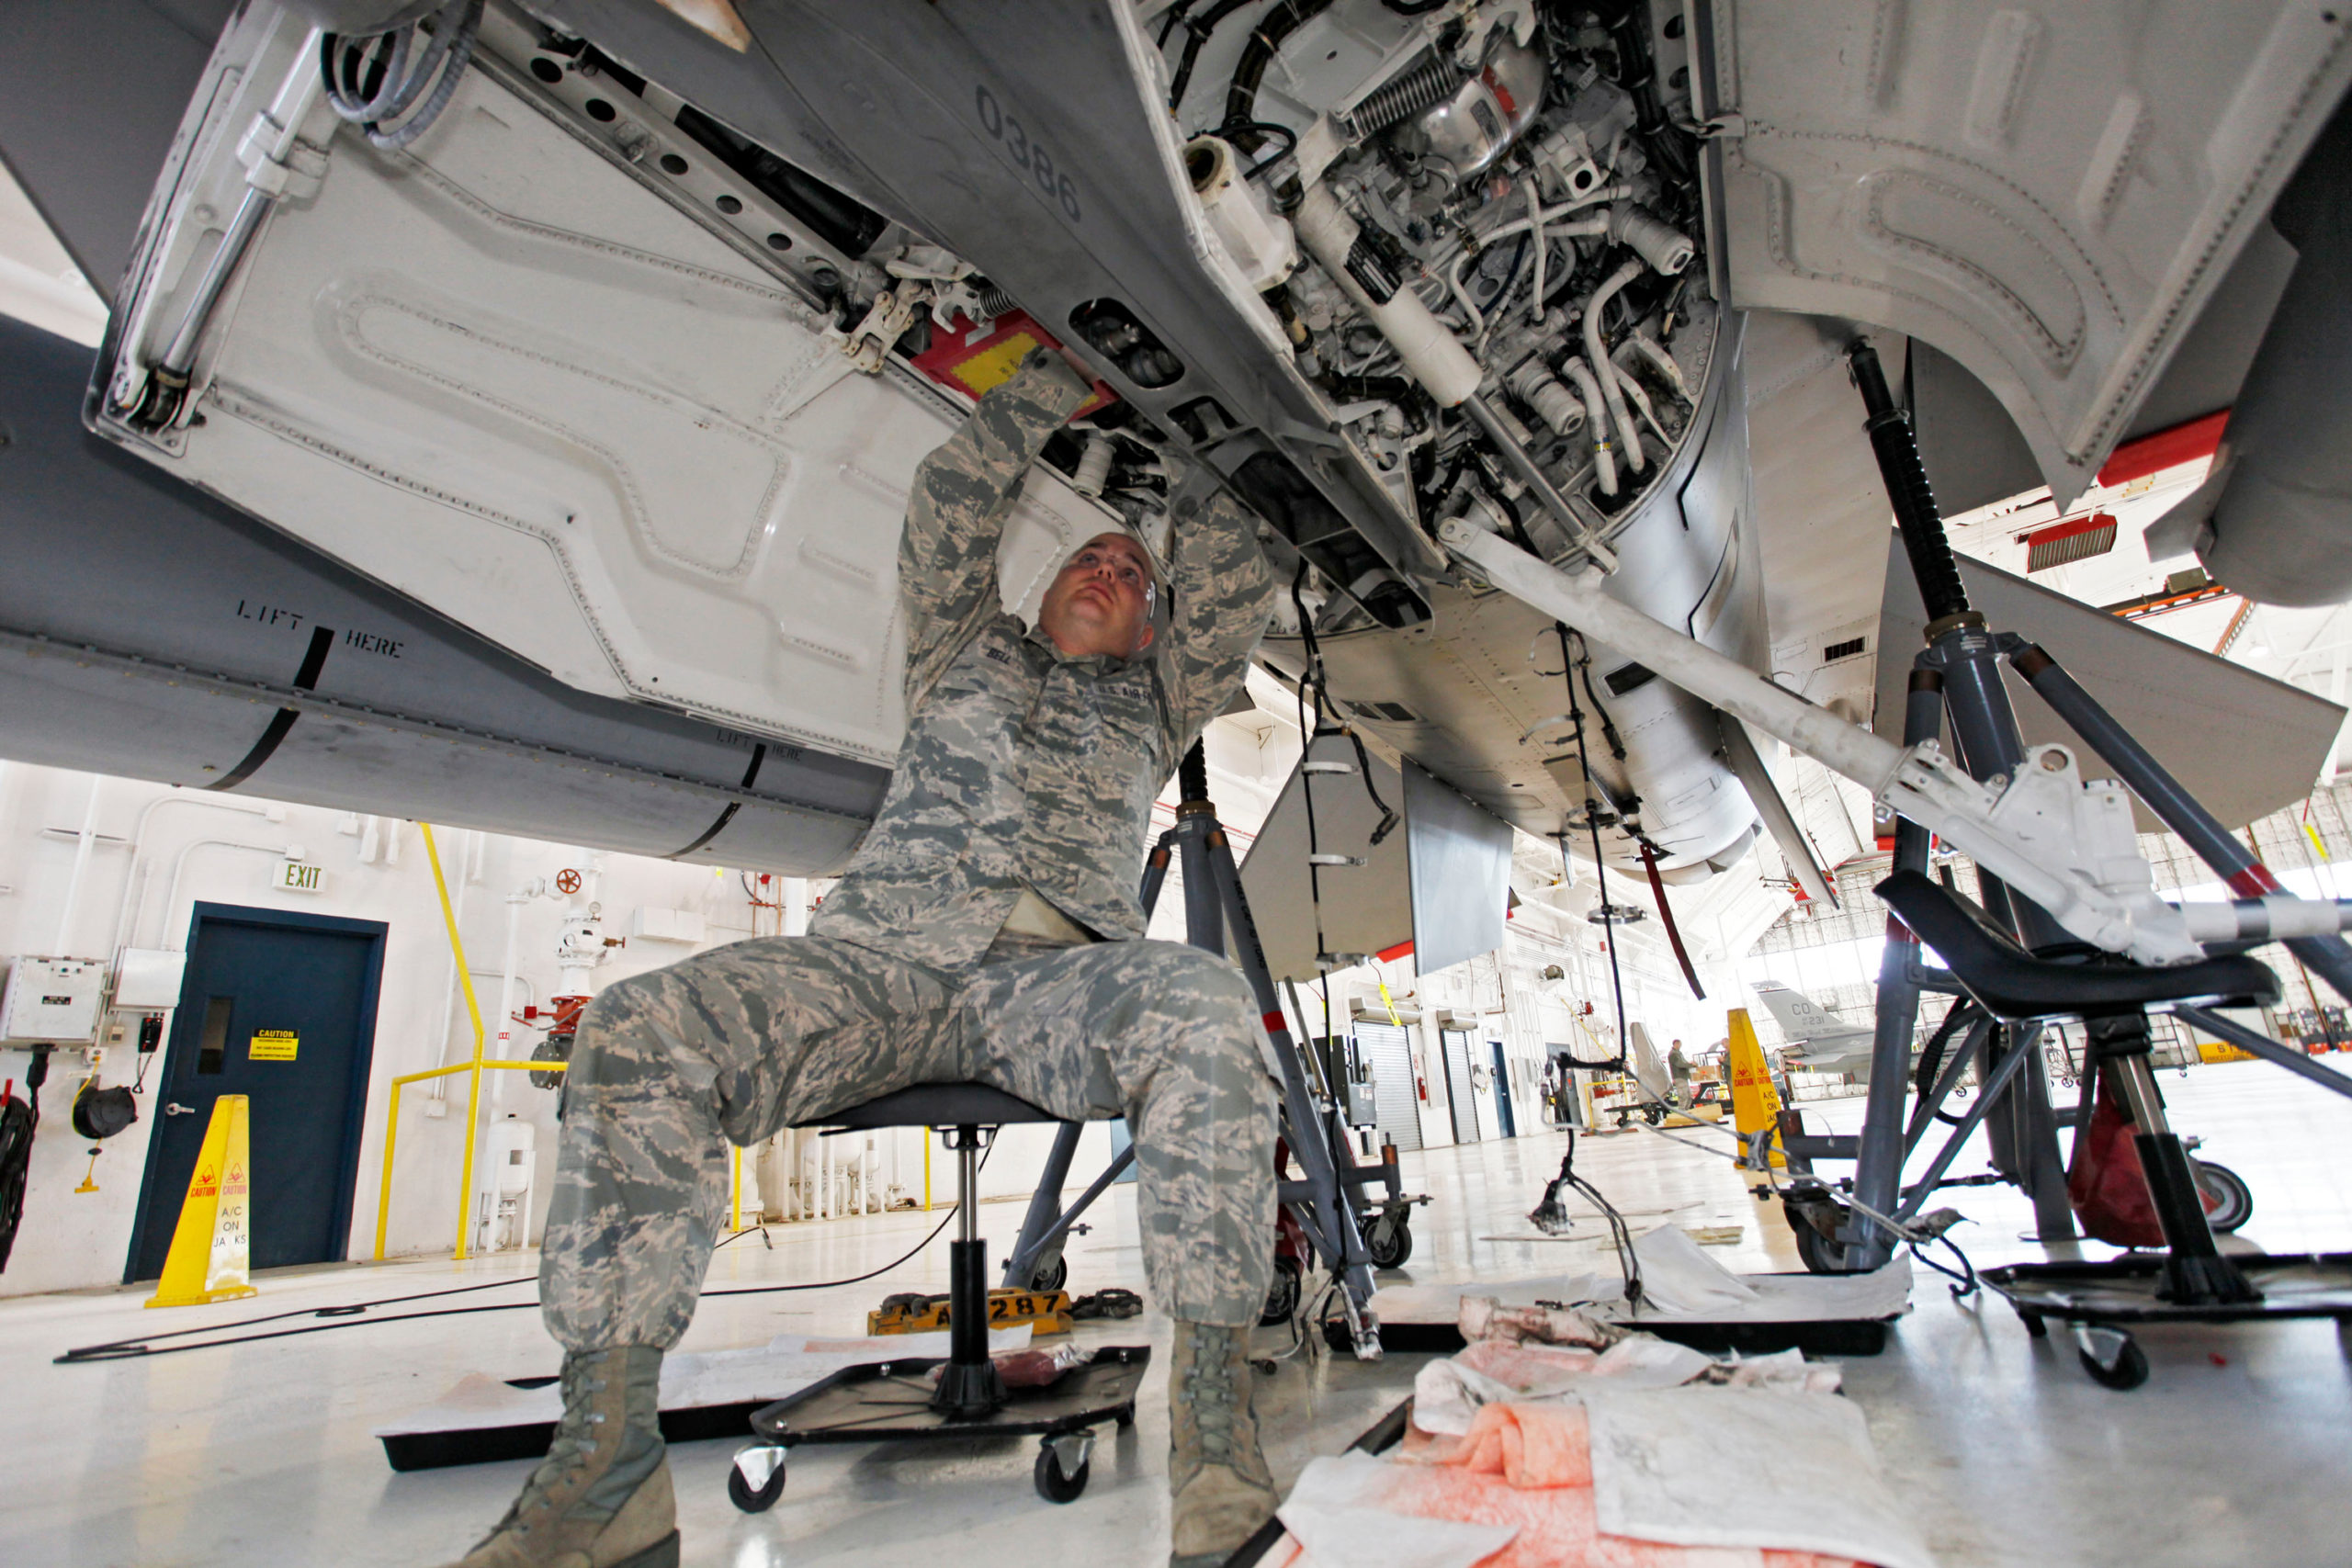 Master Sgt. Kenneth Bell, a metal technology specialist, checking the hydraulic system on an F-16 undergoing a routine checkup in a hangar at Buckley Air Force Base east of Denver. The F-16s, based at Buckley, are flown by a Colorado Air National Guard unit and have often been called on by NORAD to track down and escort planes that violate restricted airspace or otherwise arouse suspicion.